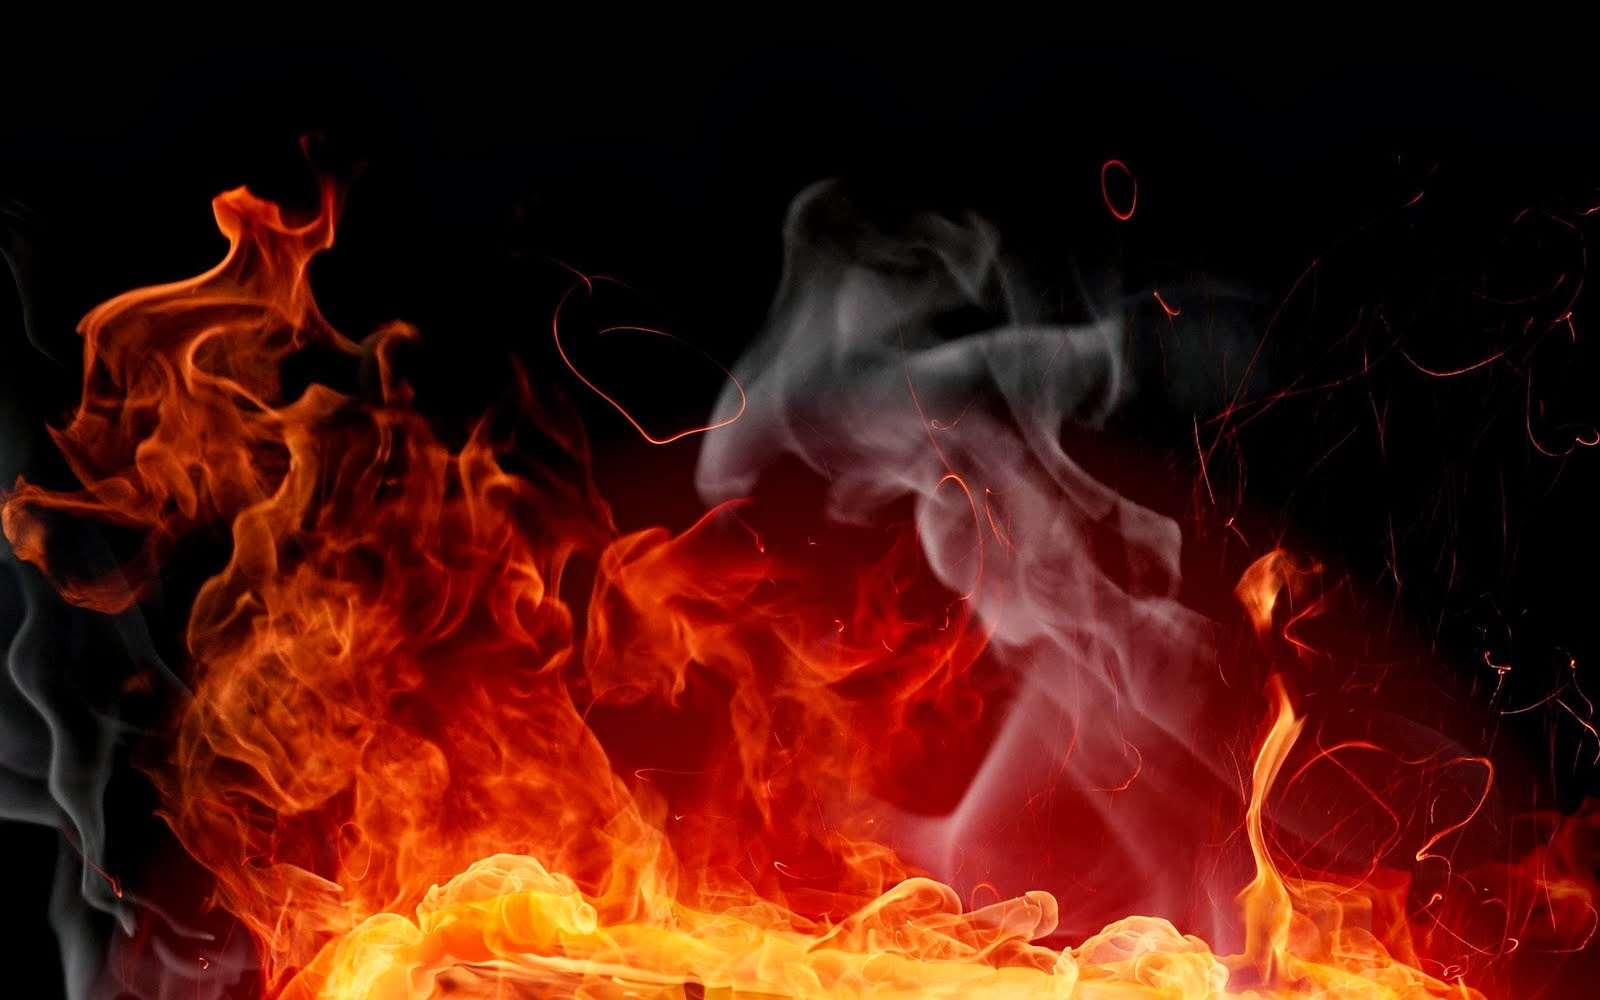 BLACK AND RED FIRE HD WALLPAPERS FREE HD WALLPAPERS 1600x1000